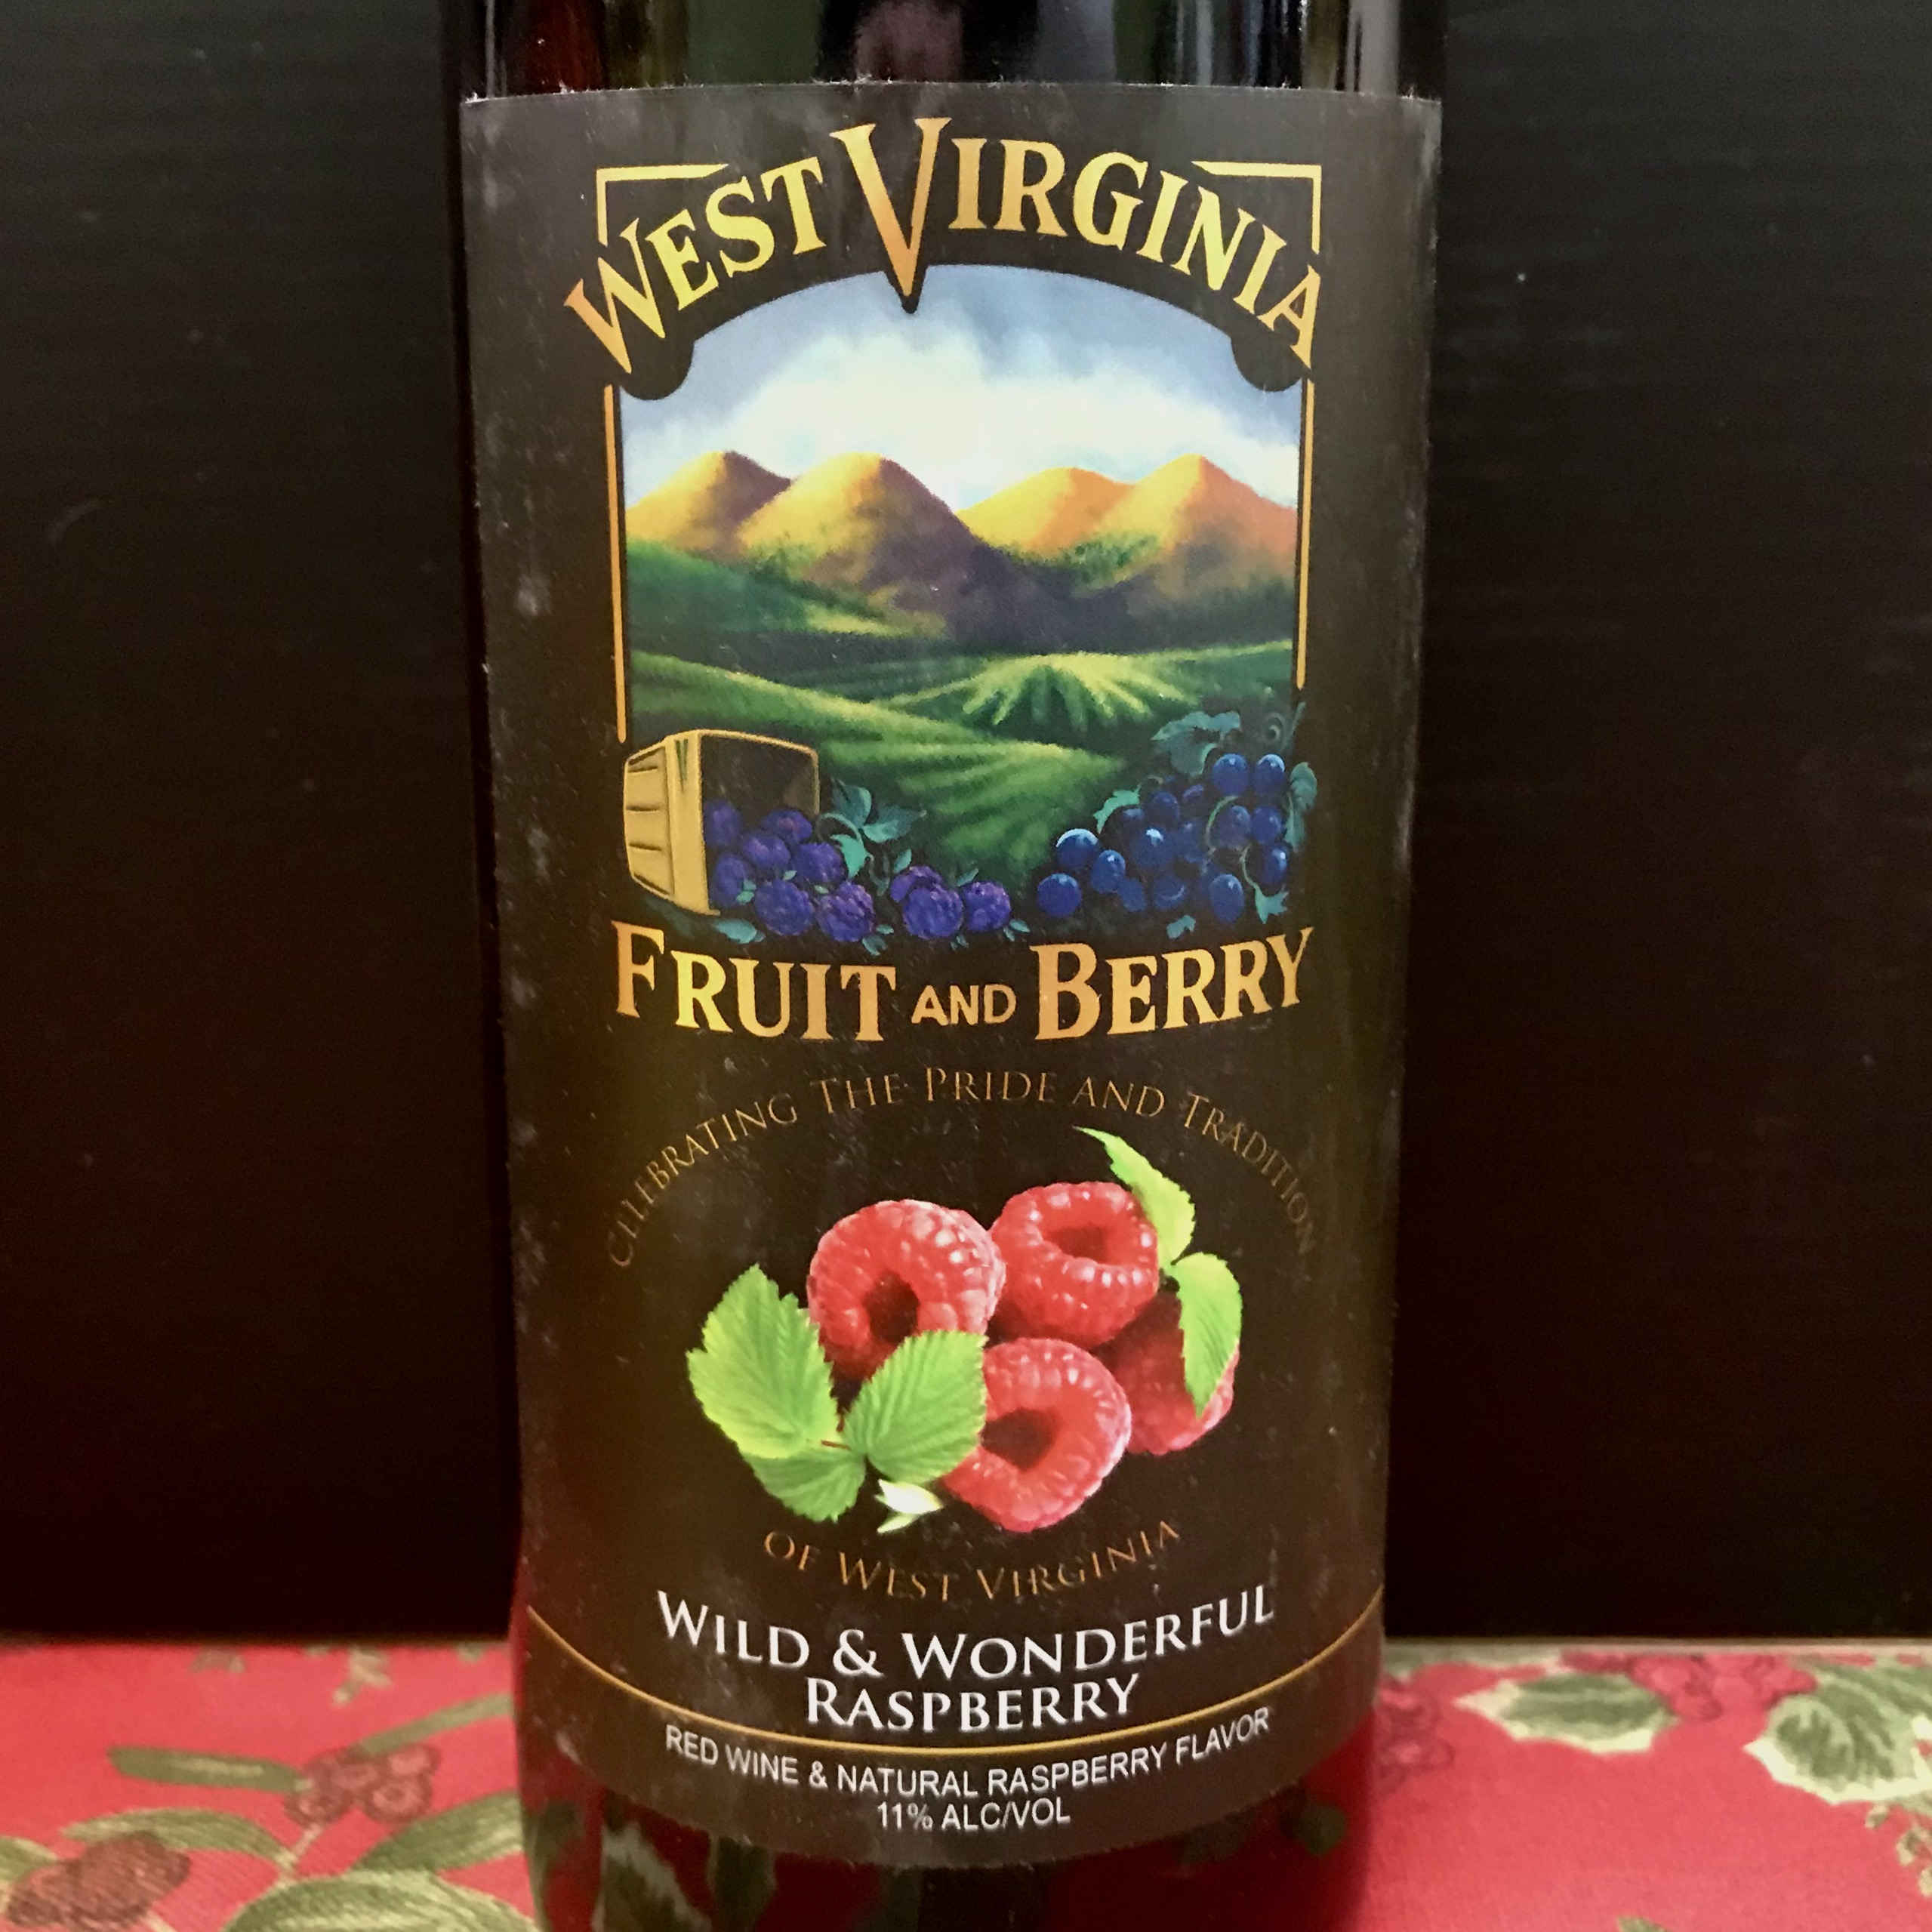 West Virginia Fruit & Berry Wild Wonderful Raspberry